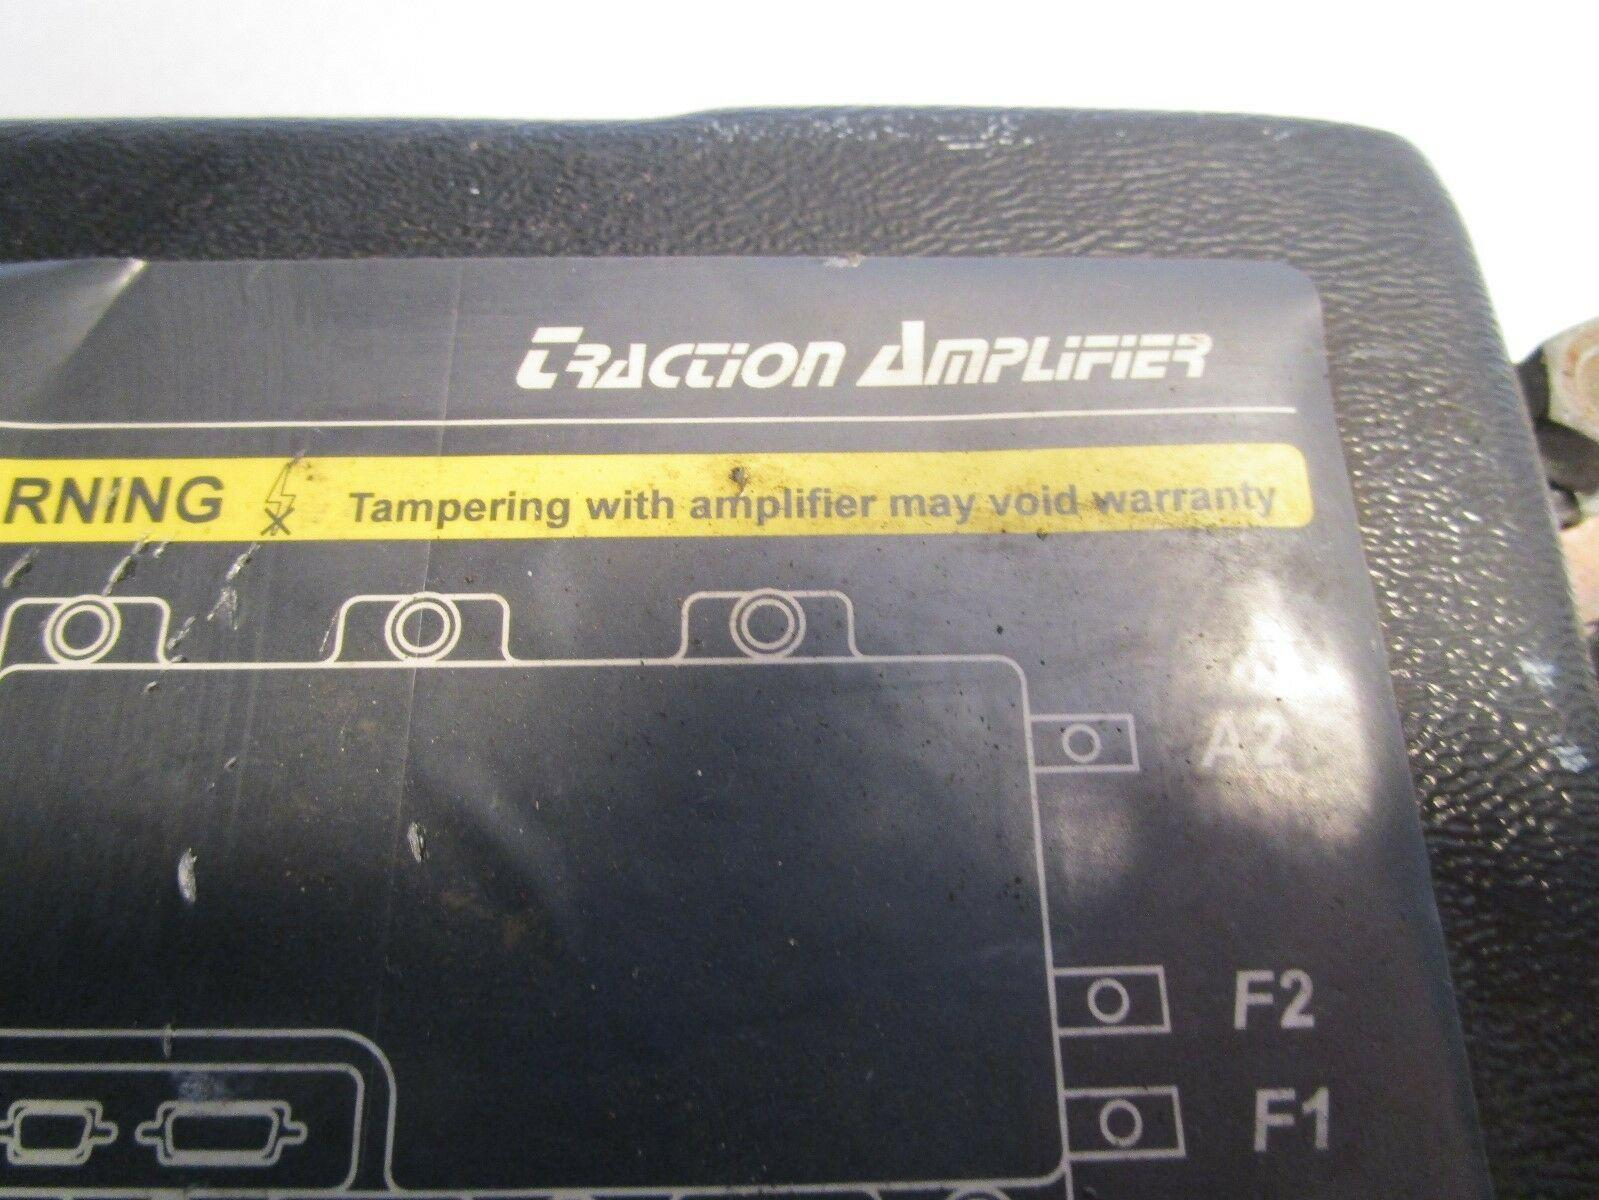 Toyota Fork Lift Traction Amplifier PN 6670010-00